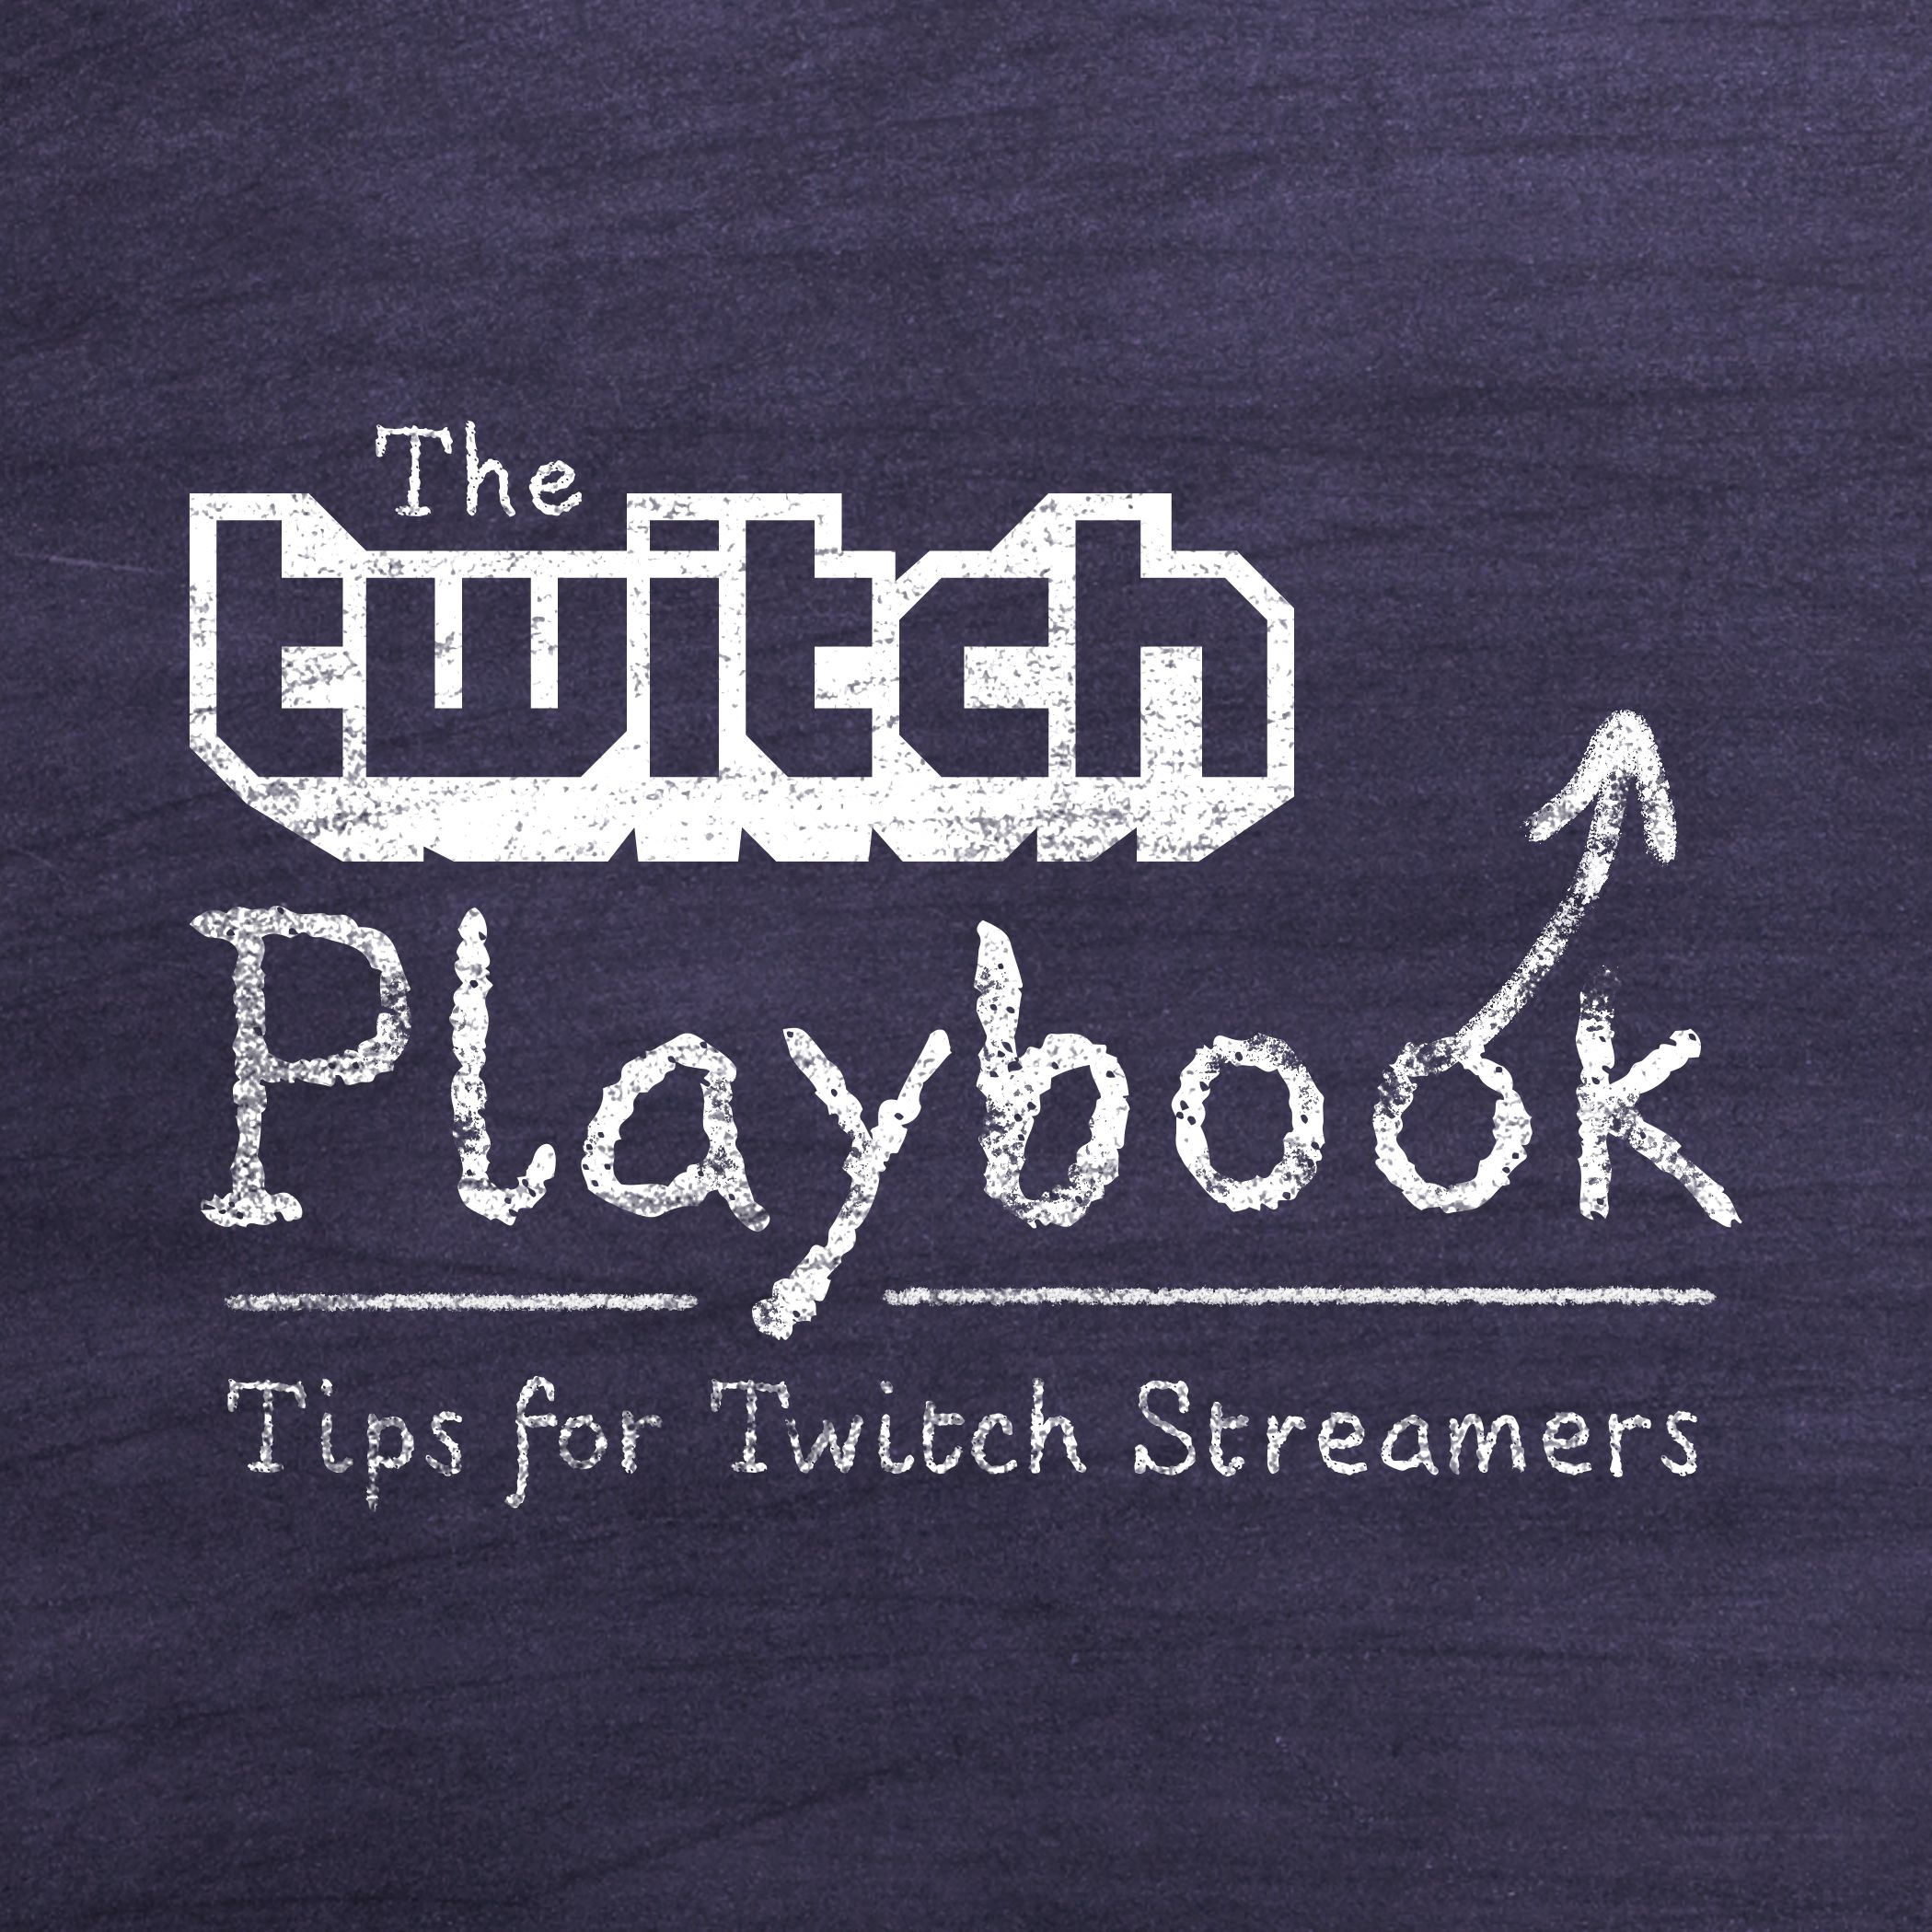 Best Episodes of Stream Key Podcast: Twitch Streaming Tips